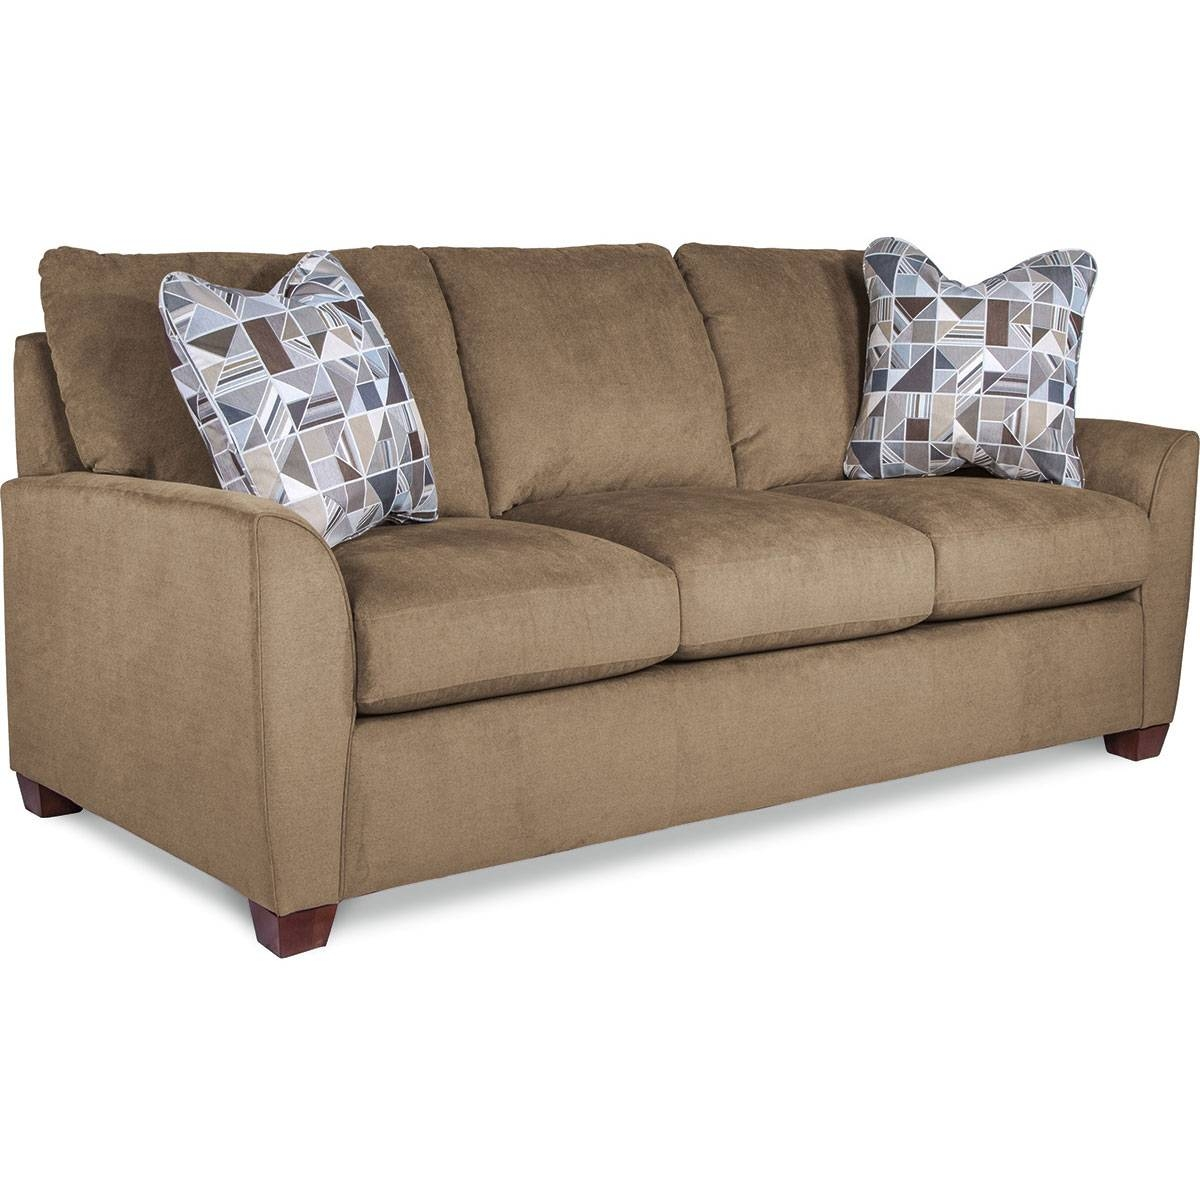 Amy Premier Sofa in Sofas (Image 1 of 15)